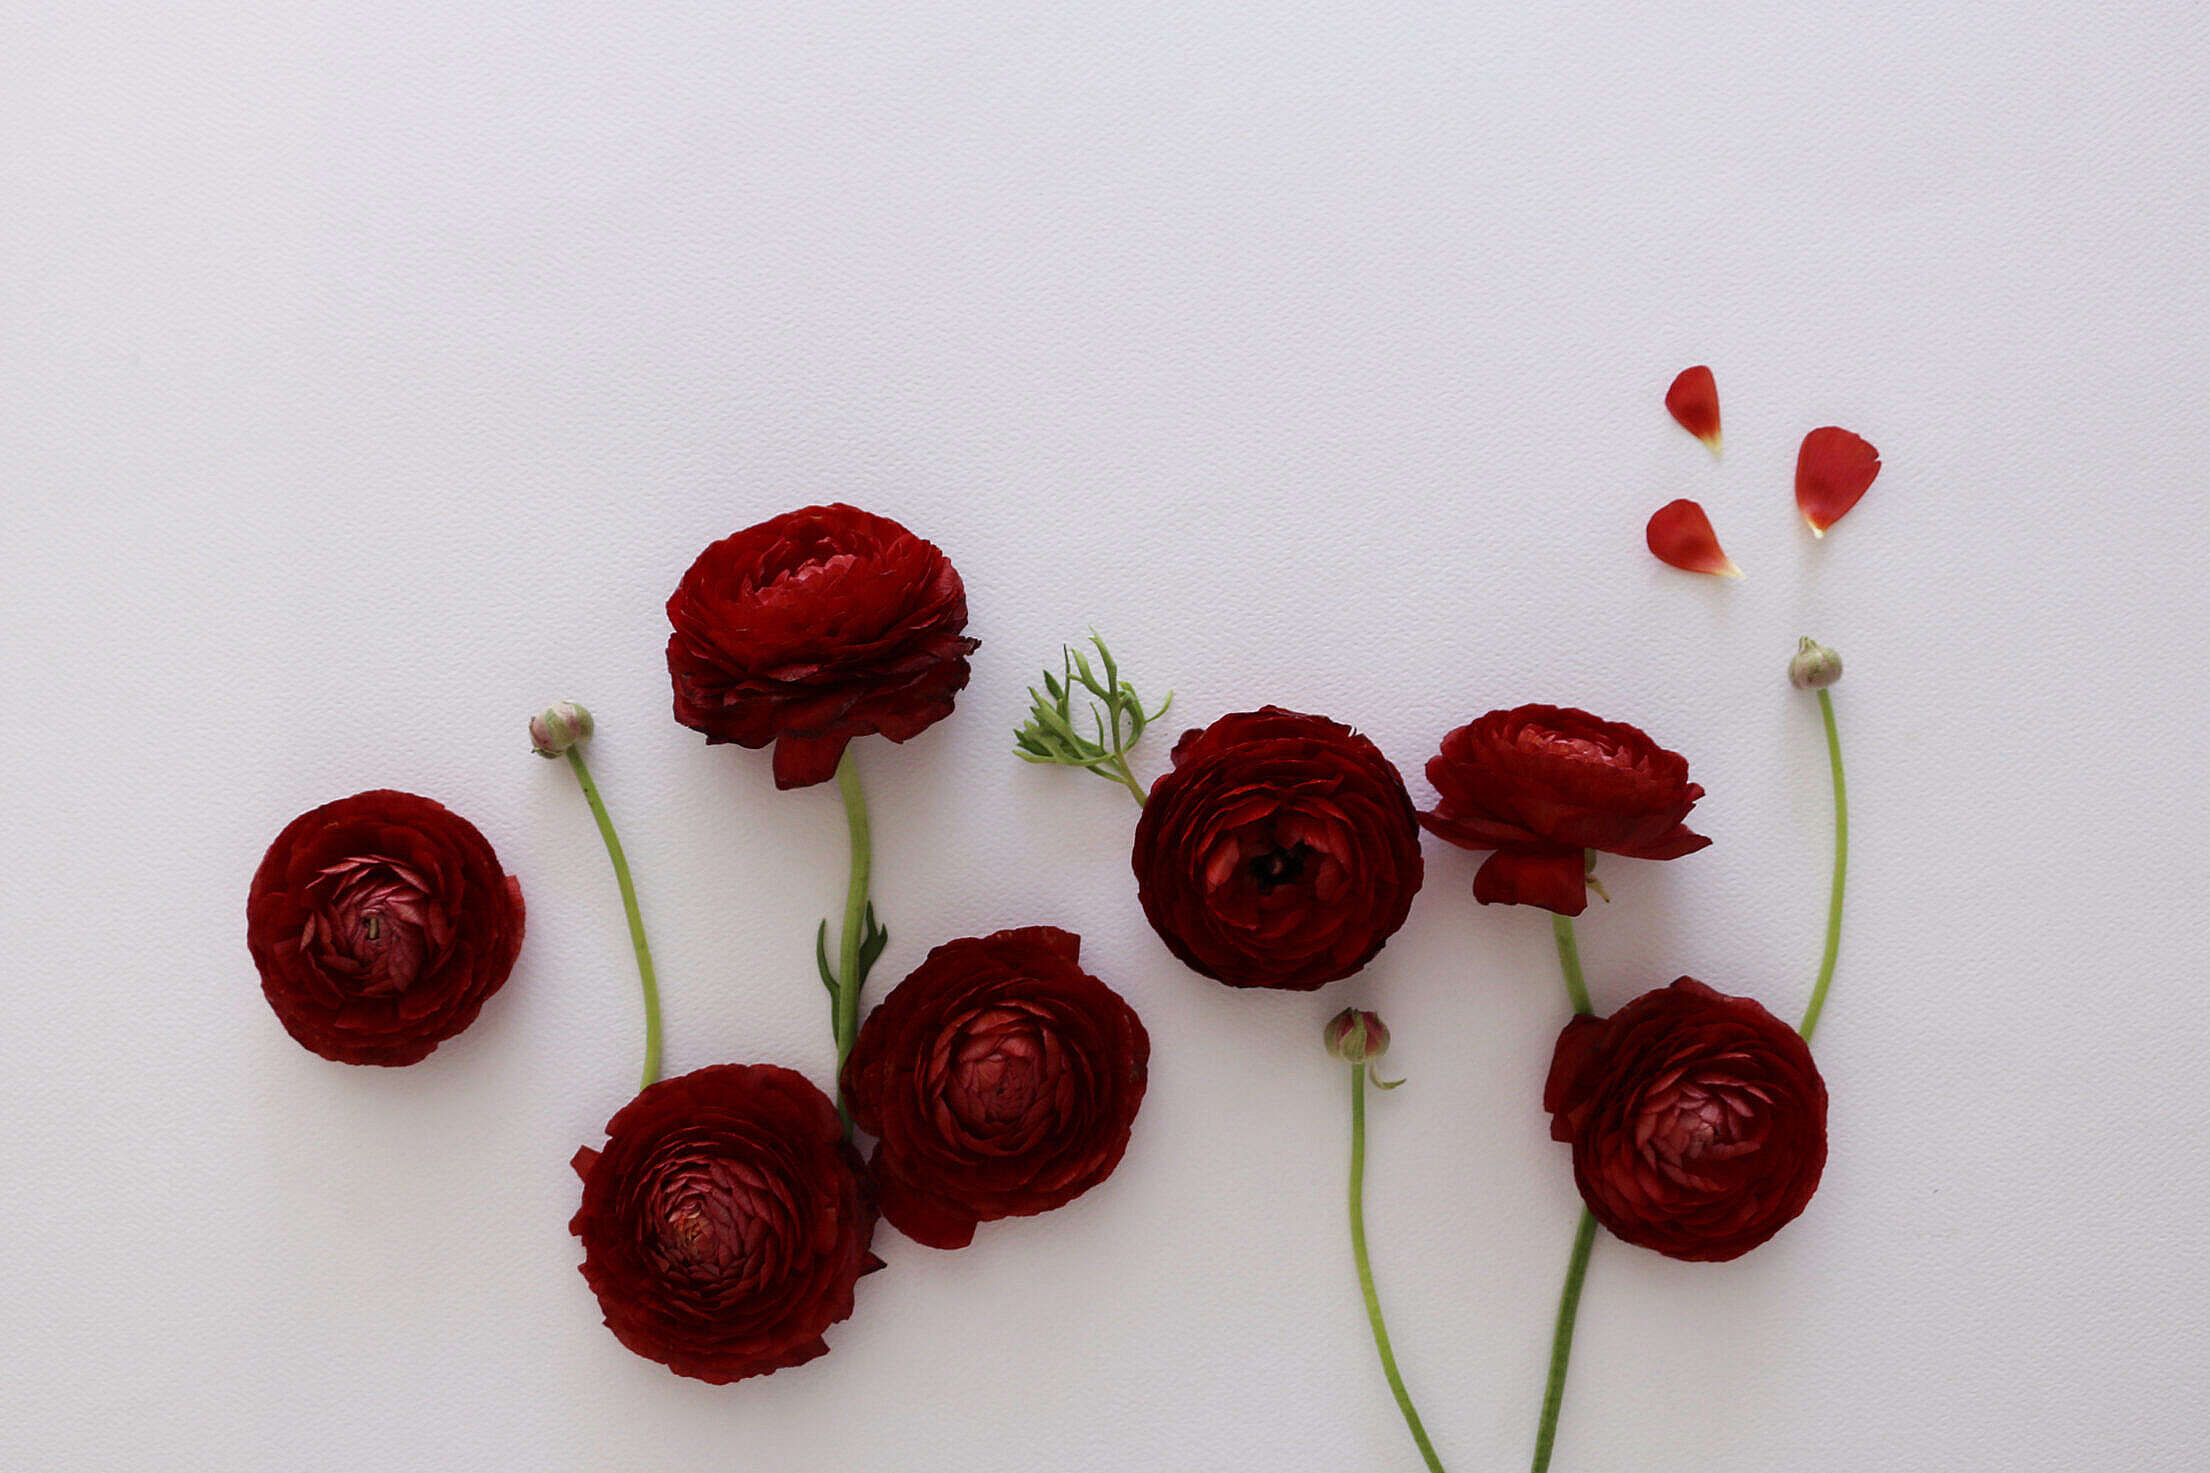 Red Flowers Flat Lay Free Stock Photo